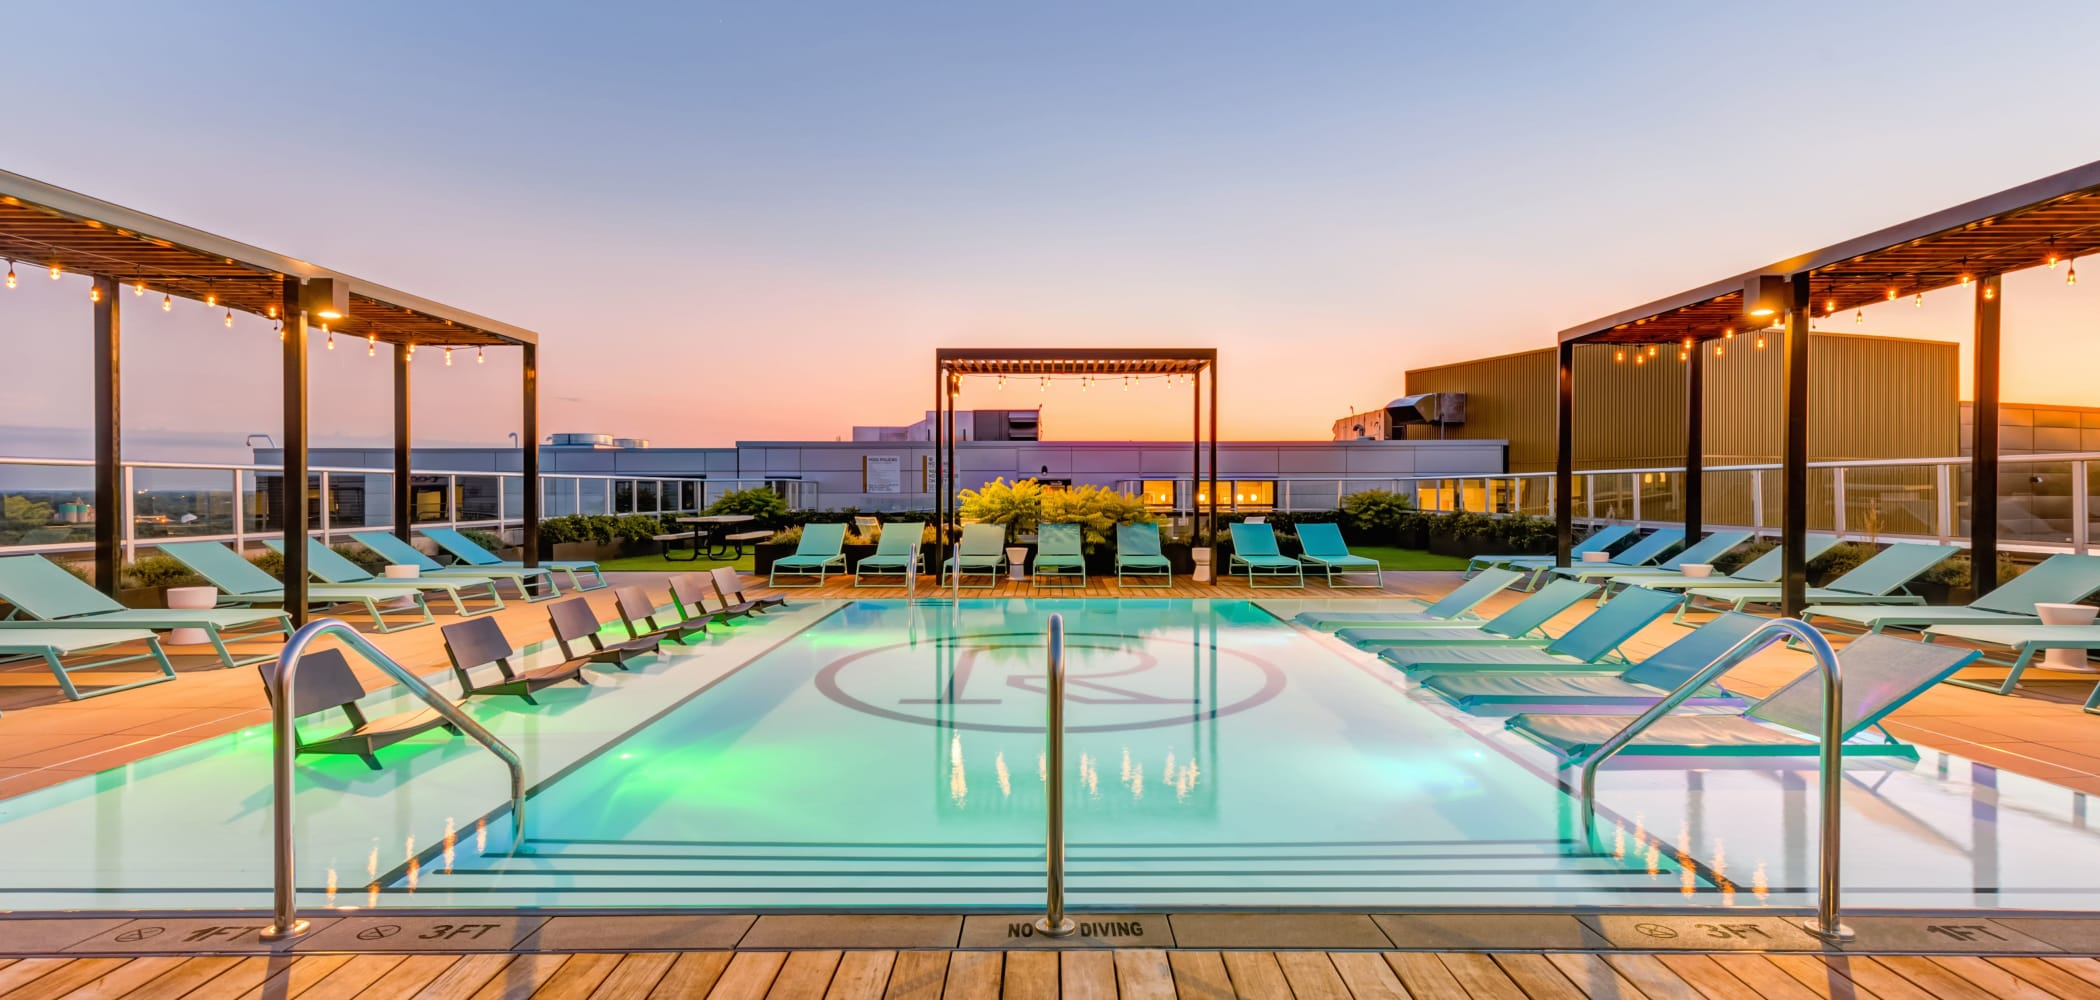 Sparkling swimming pool at RISE on Chauncey in West Lafayette, Indiana